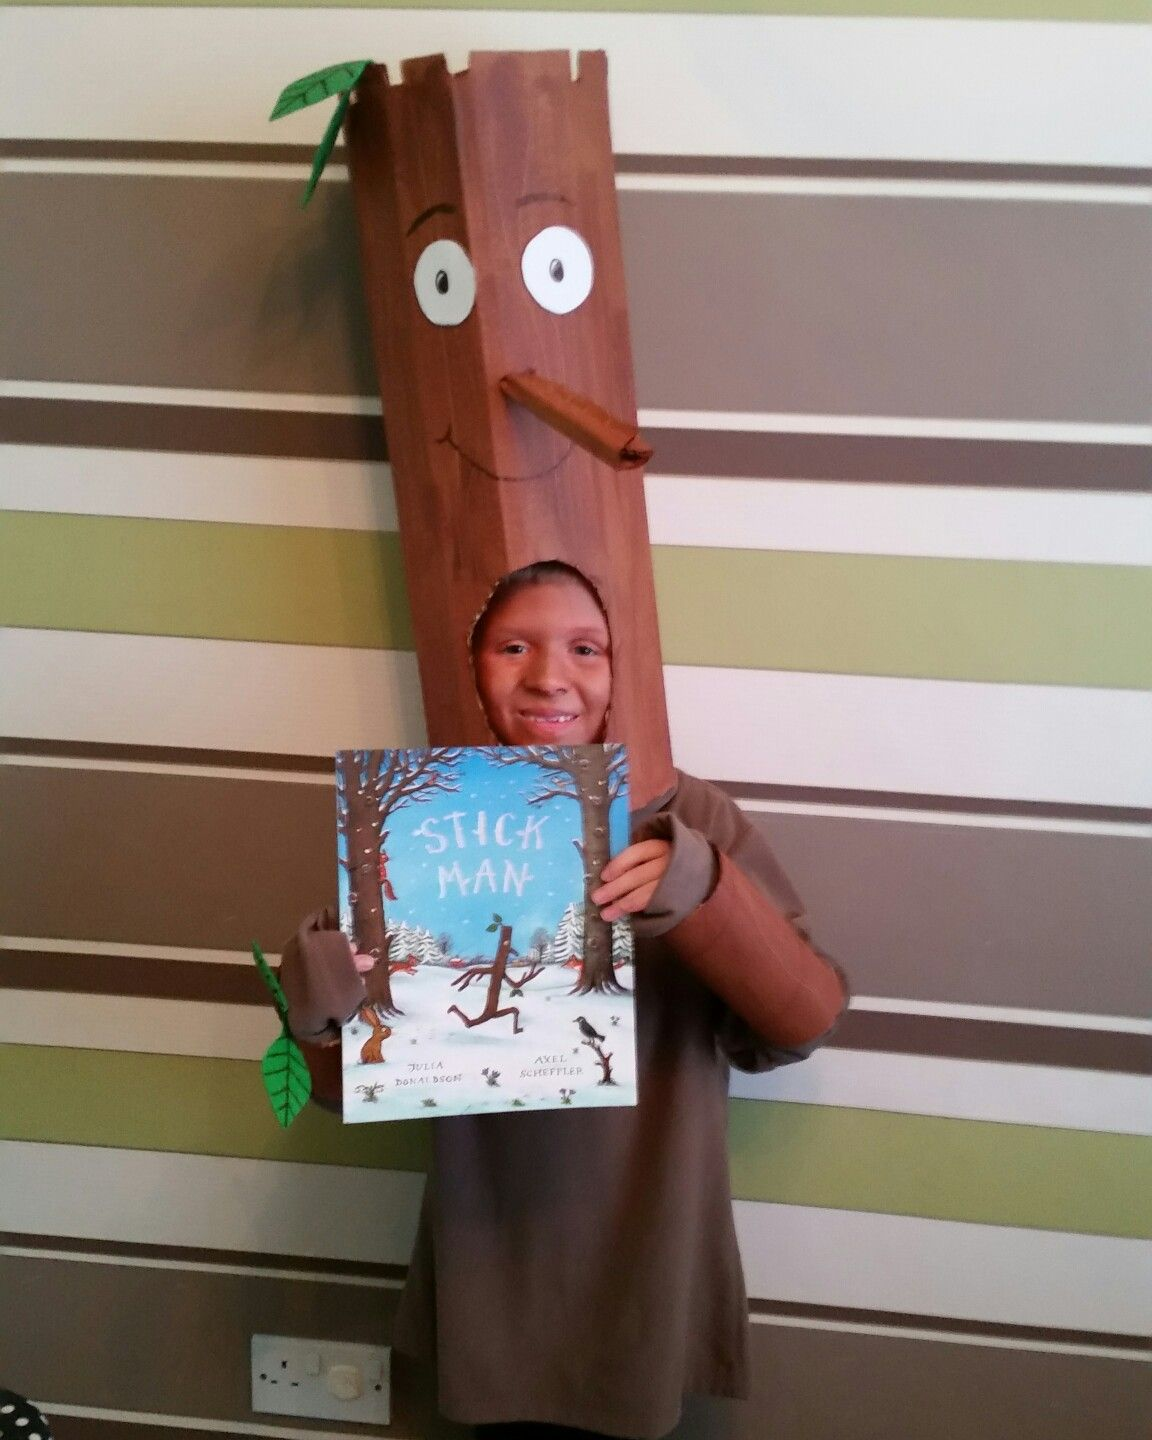 Stick Man costume for World Book Day.  sc 1 st  Pinterest & Stick Man costume for World Book Day. | Book parade costume ...